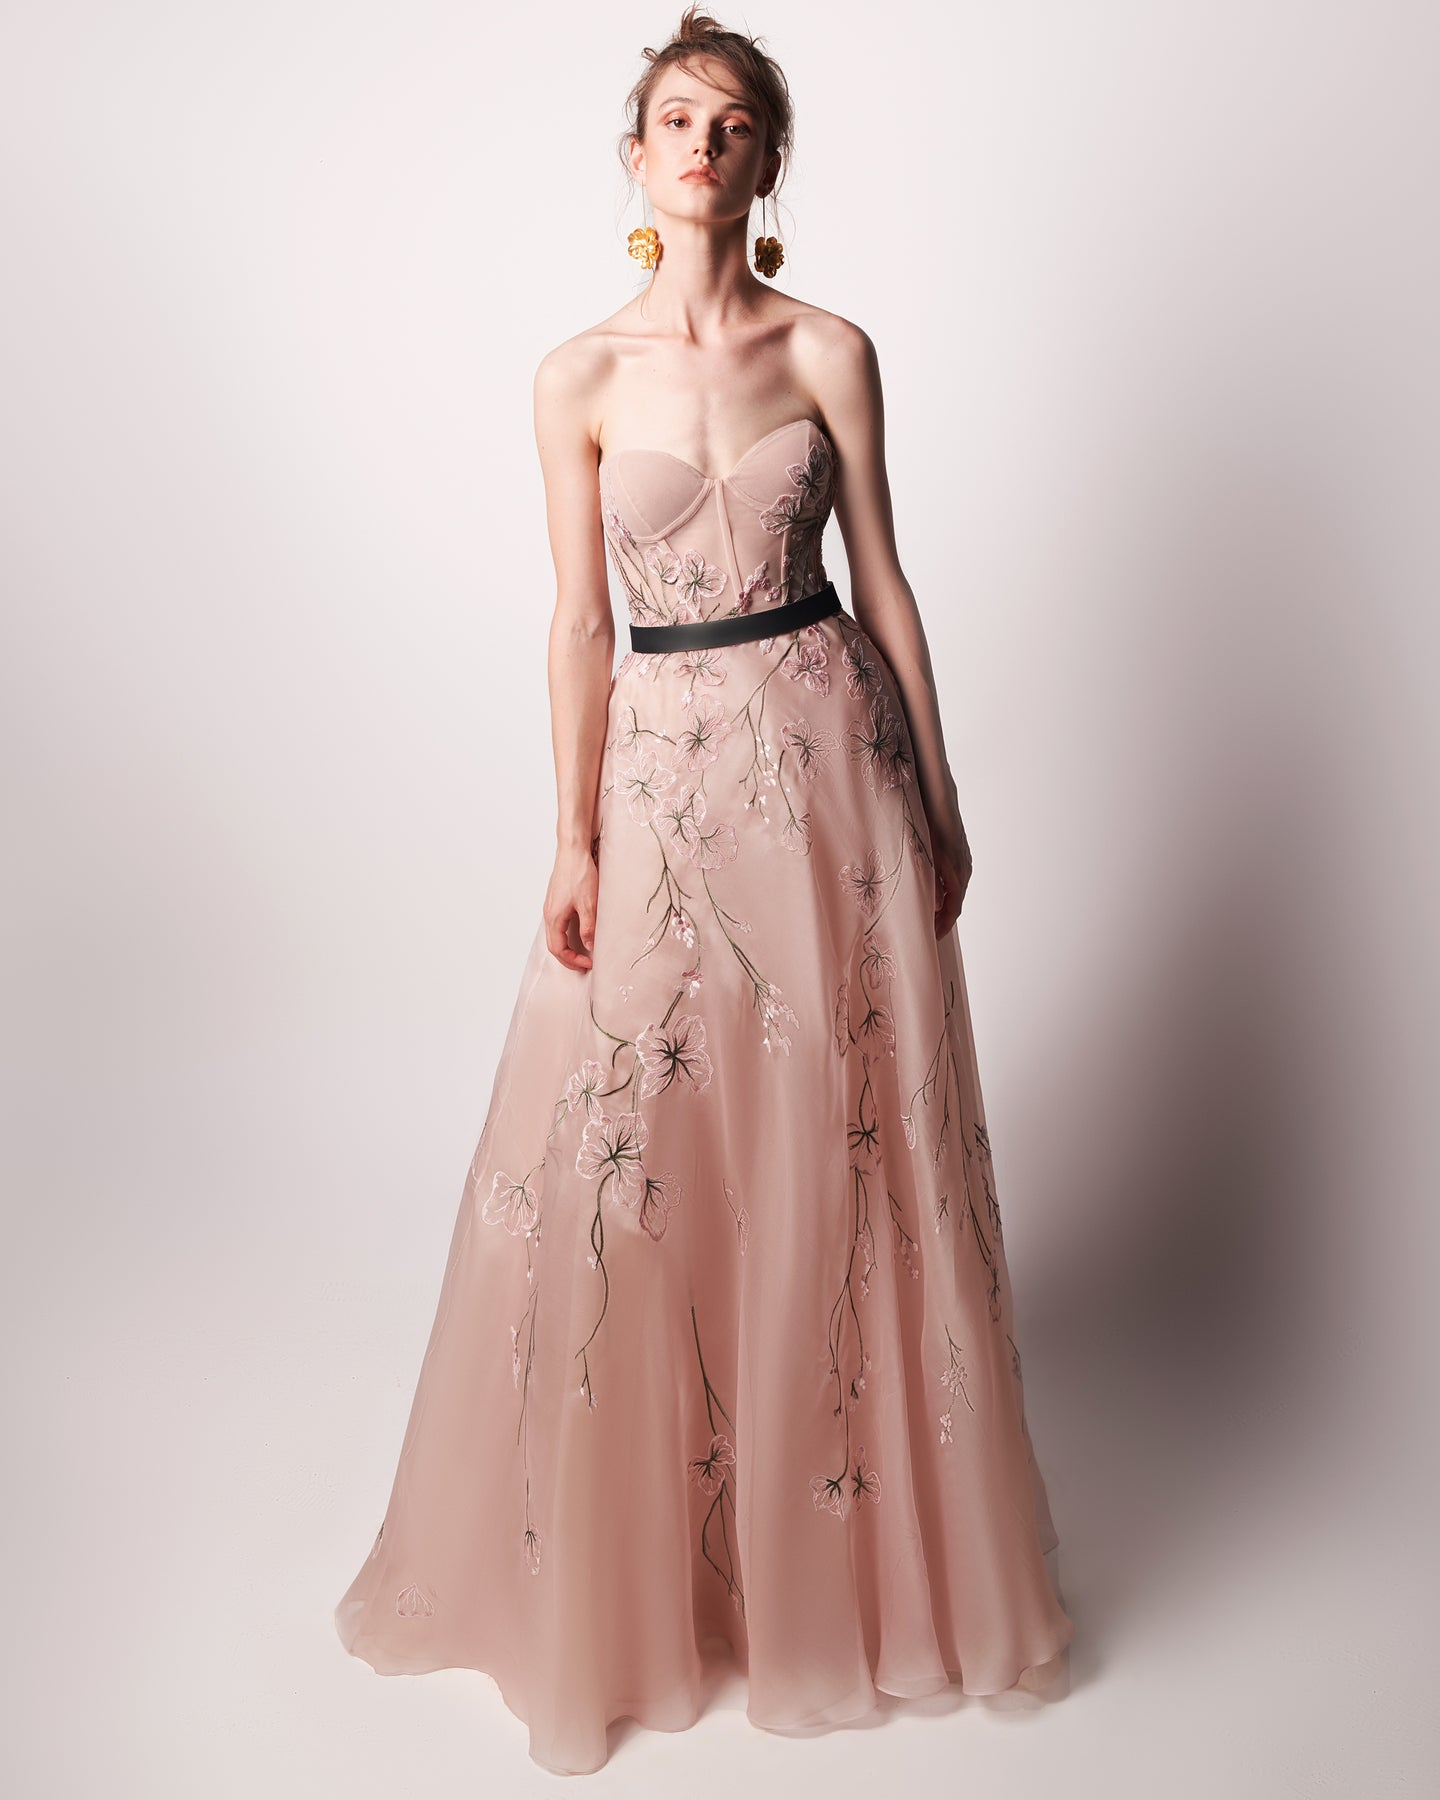 Essential Bloom - Hand Embroidered Organza Dress